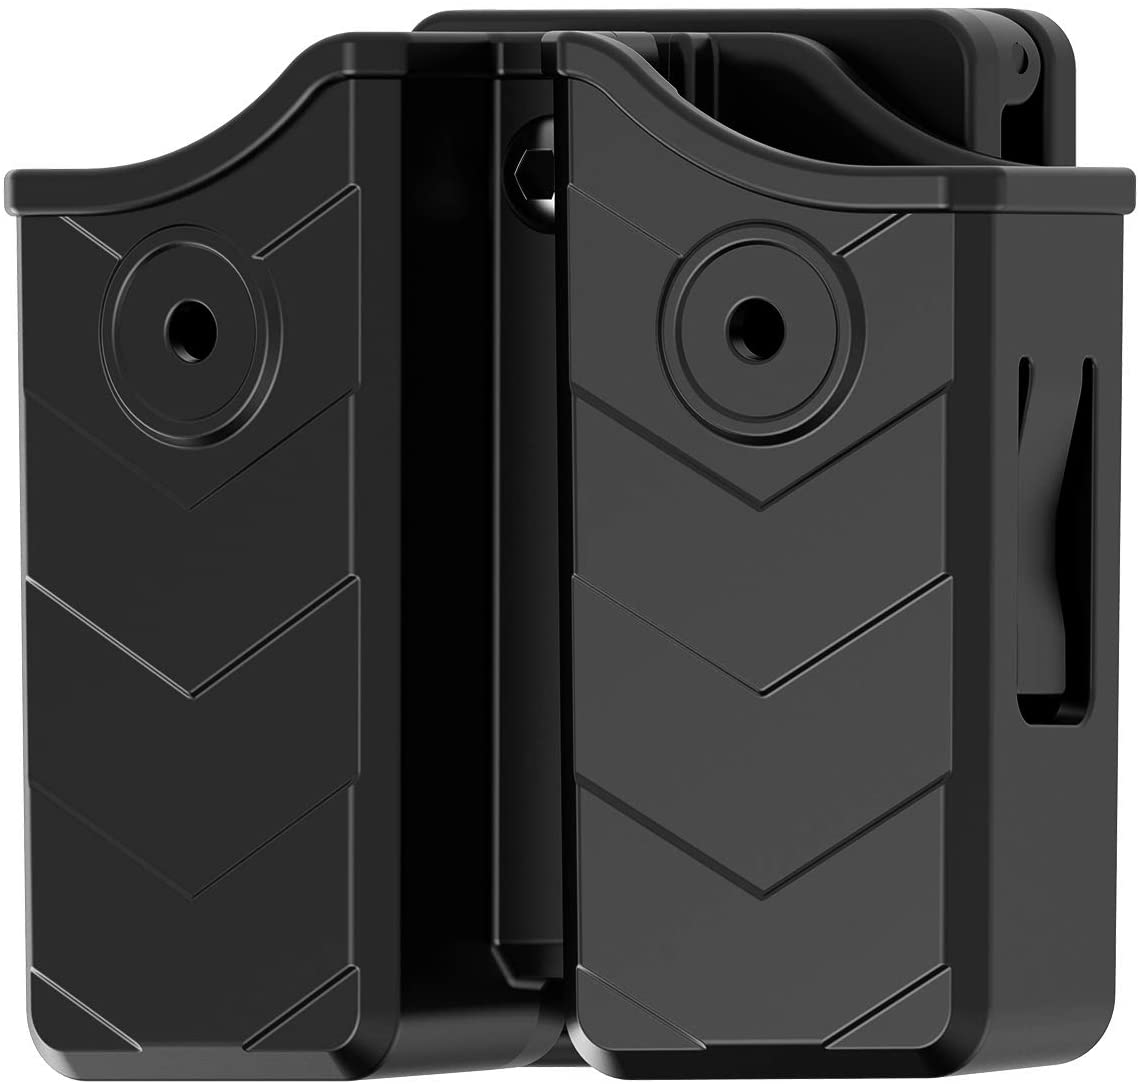 Magazine Pouch, Universal Double Stack Magazine Holster for 9mm/.40 Dual Stack Magazines, Mag Holder with Adjustable Belt Clip for Glock/S&W/Ruger/Sig Sauer/Taurus/Beretta/Springfield/CZ/Walther/H&K